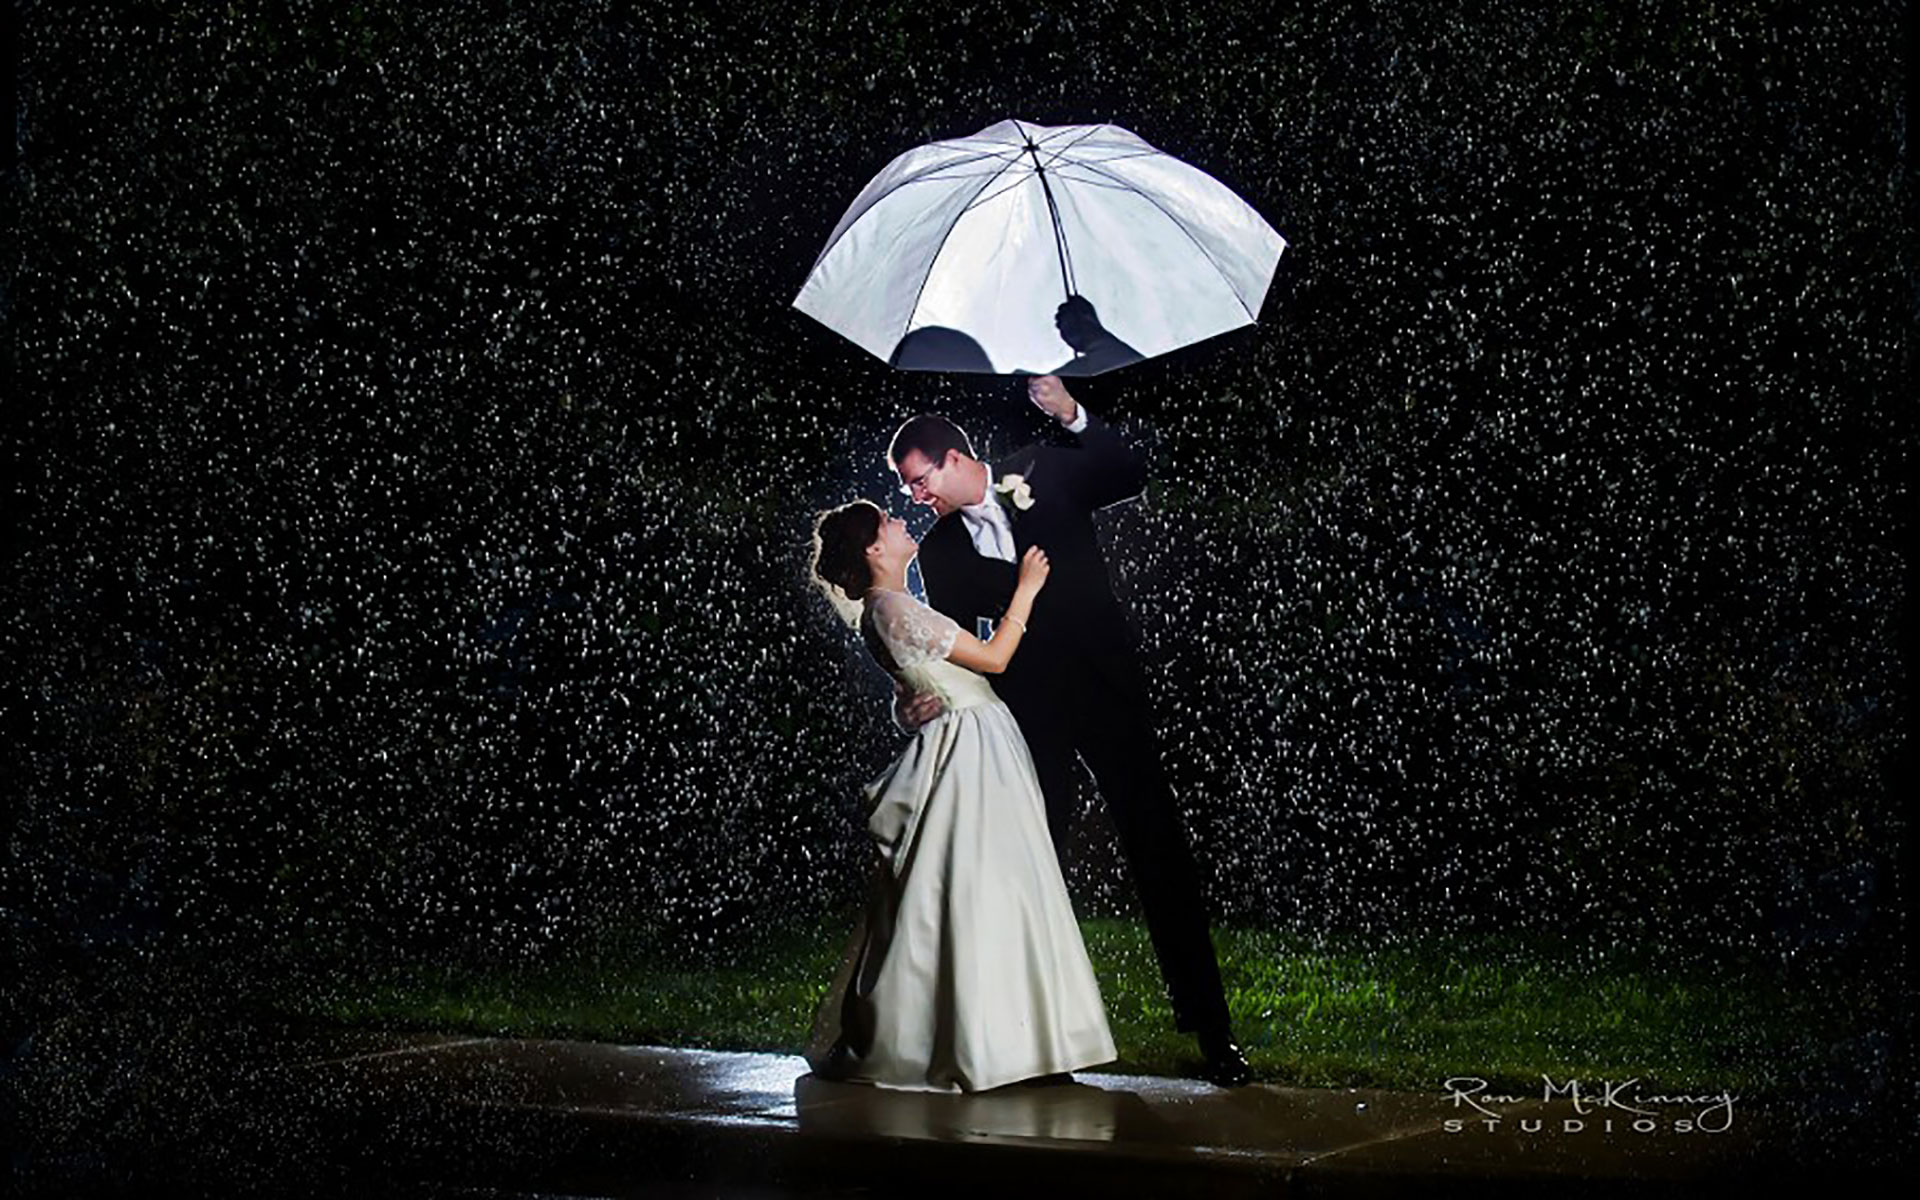 Cute Dolls Wallpapers With Quotes 20 Love Couple S Romance In The Rain Wallpapers